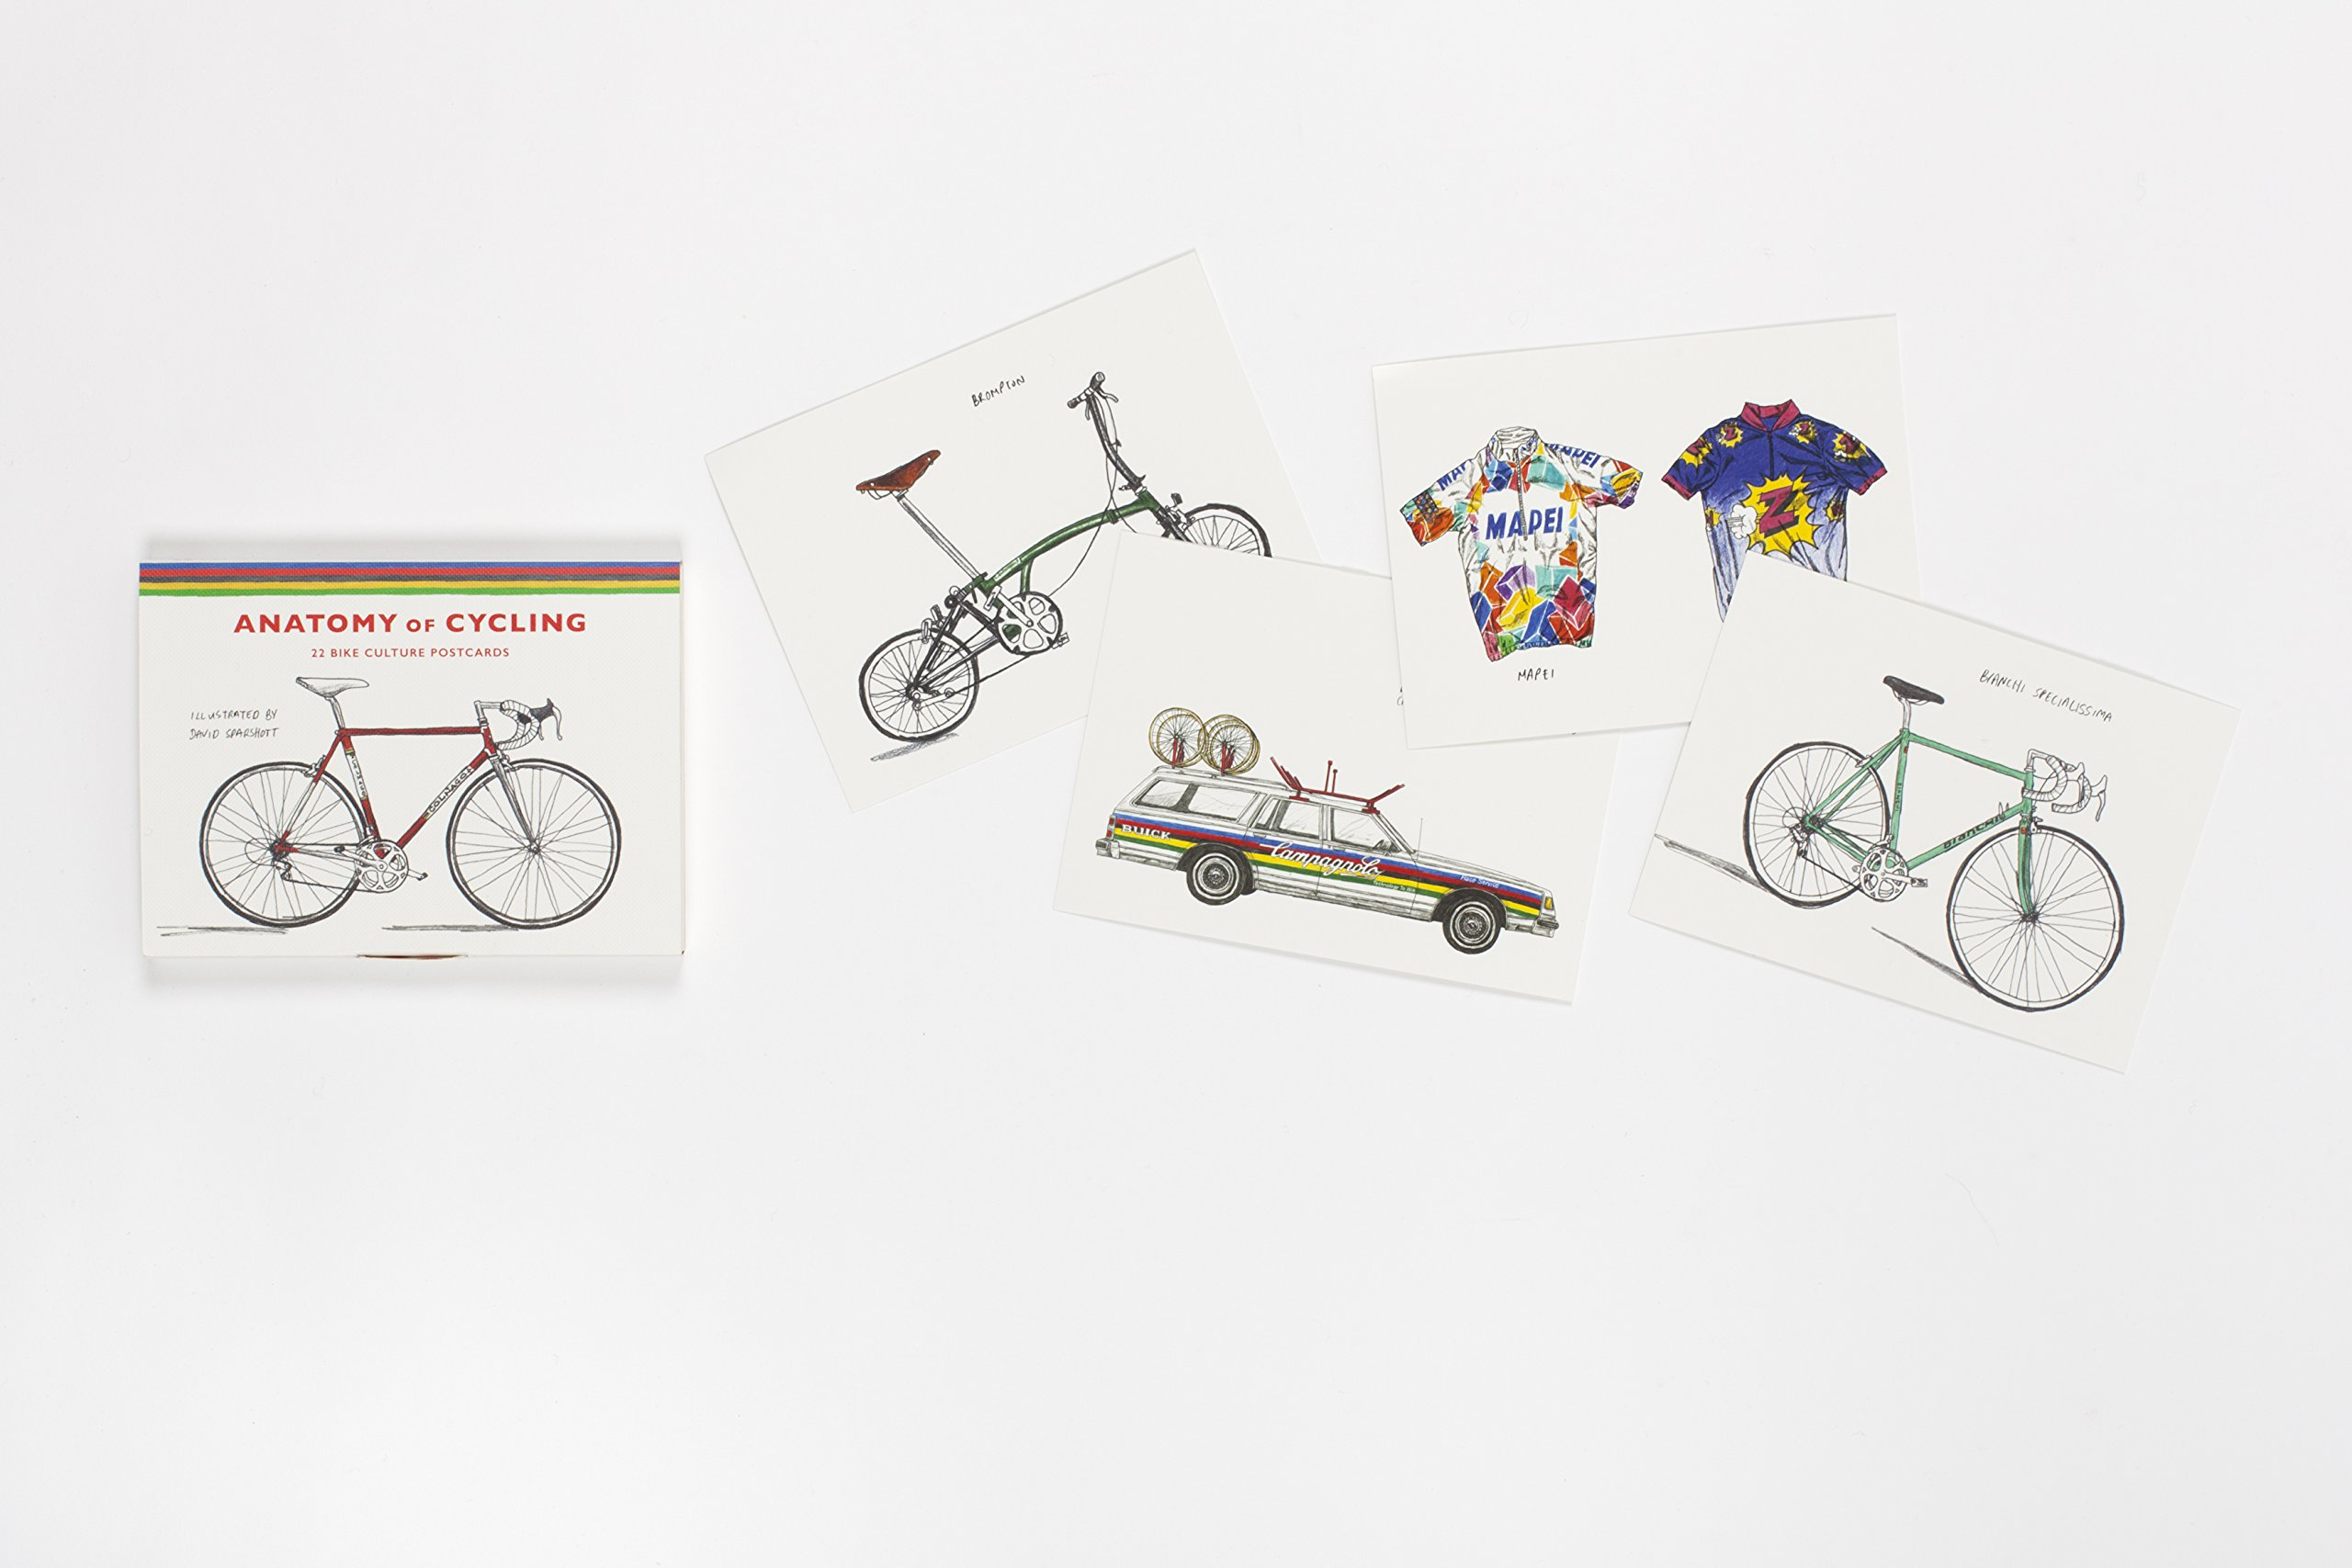 Anatomy of Cycling: 22 Bike Culture Postcards: Amazon.co.uk: David ...